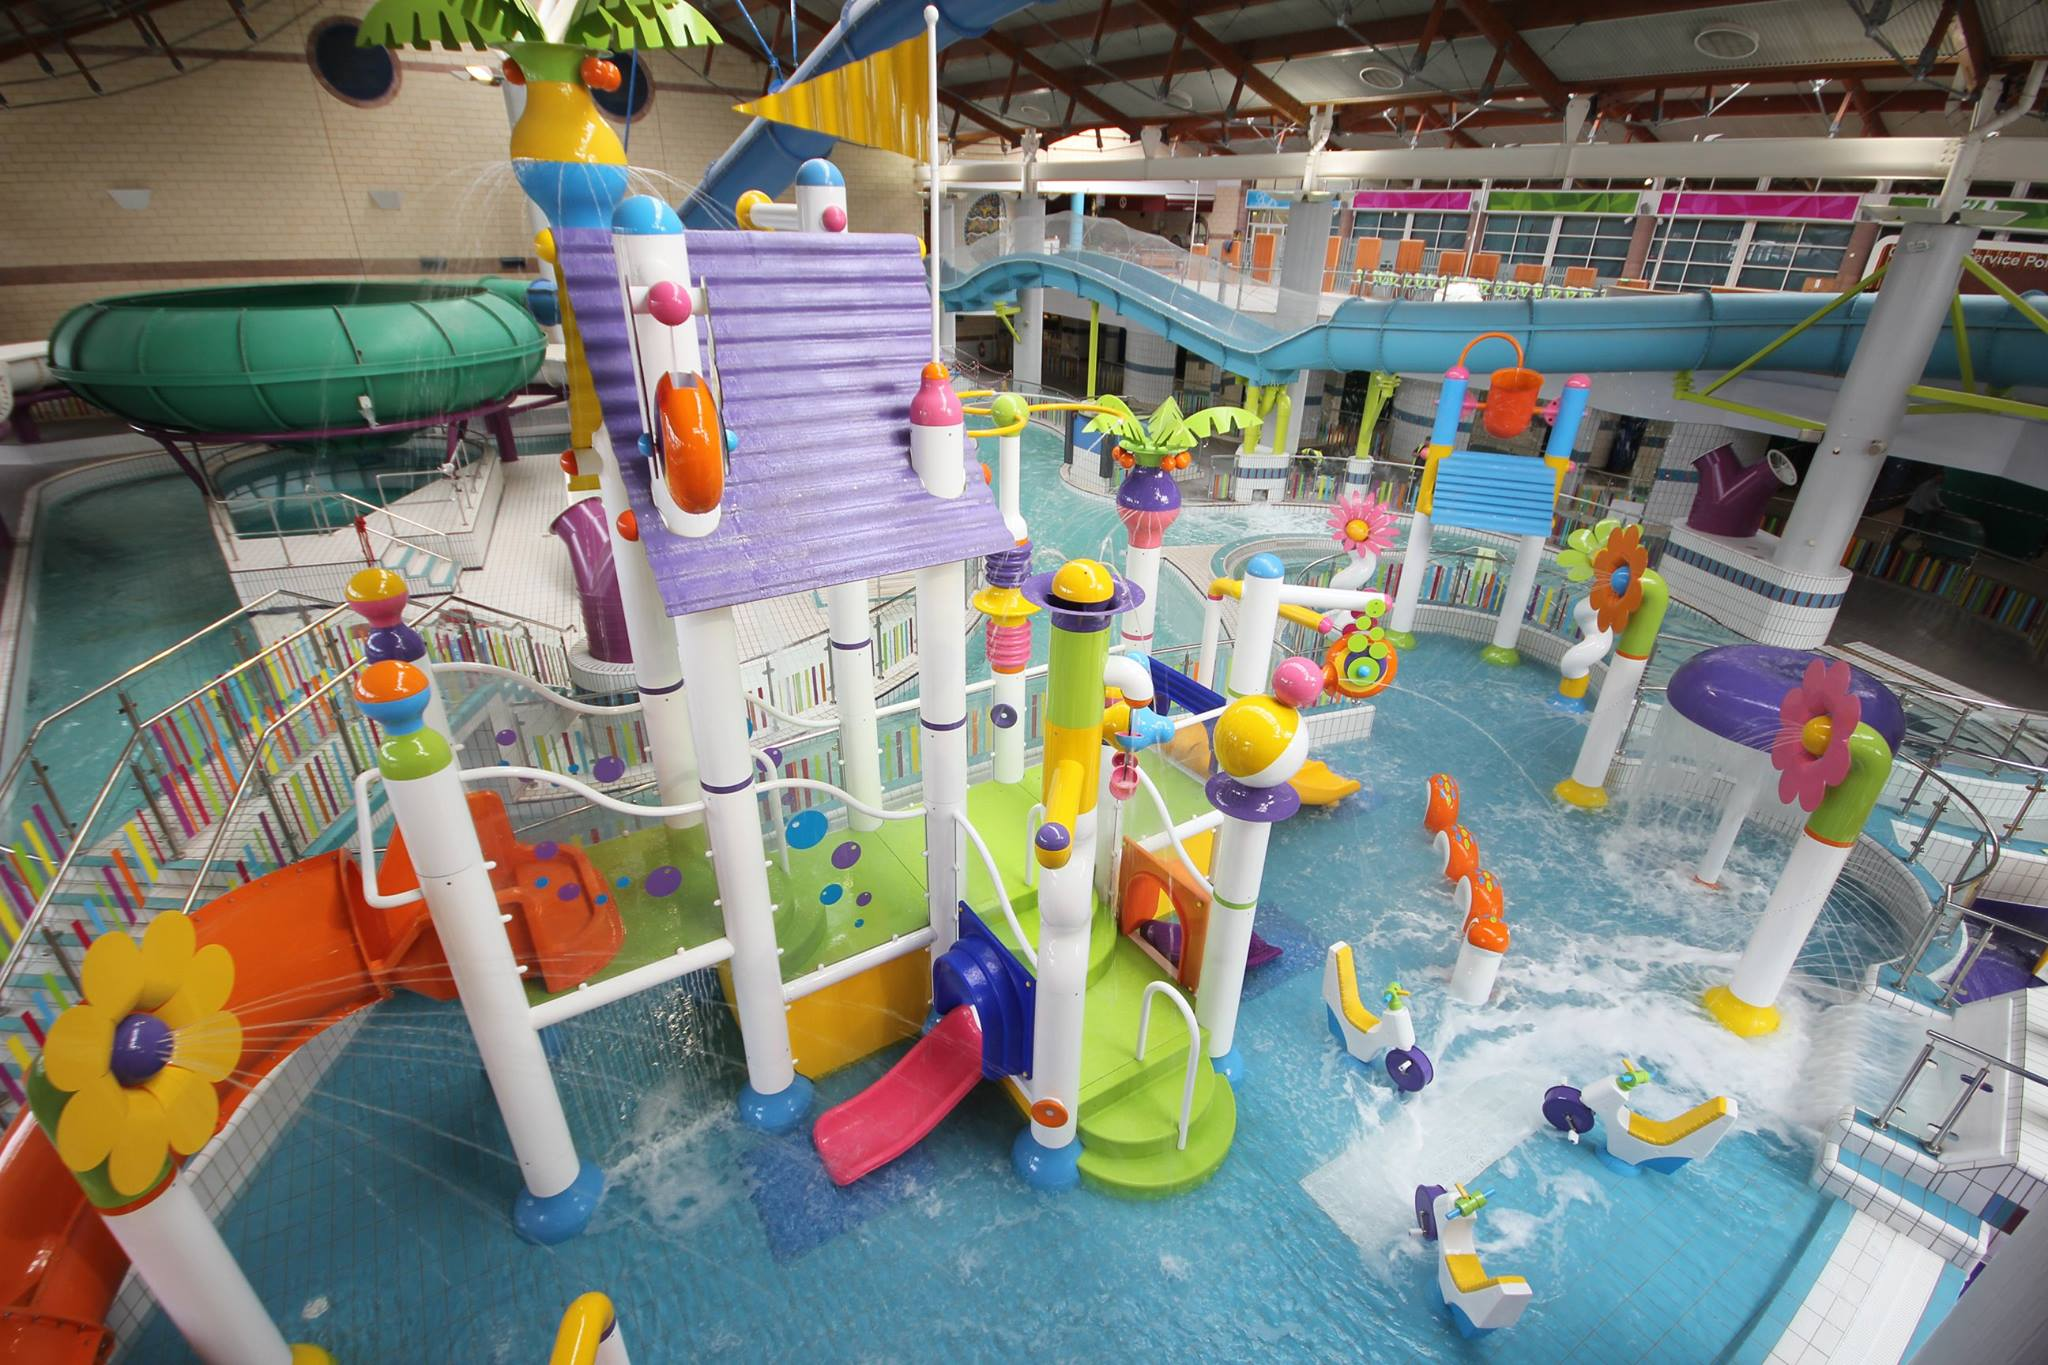 Birdseye view of children's swimming and play area at the leisureplex